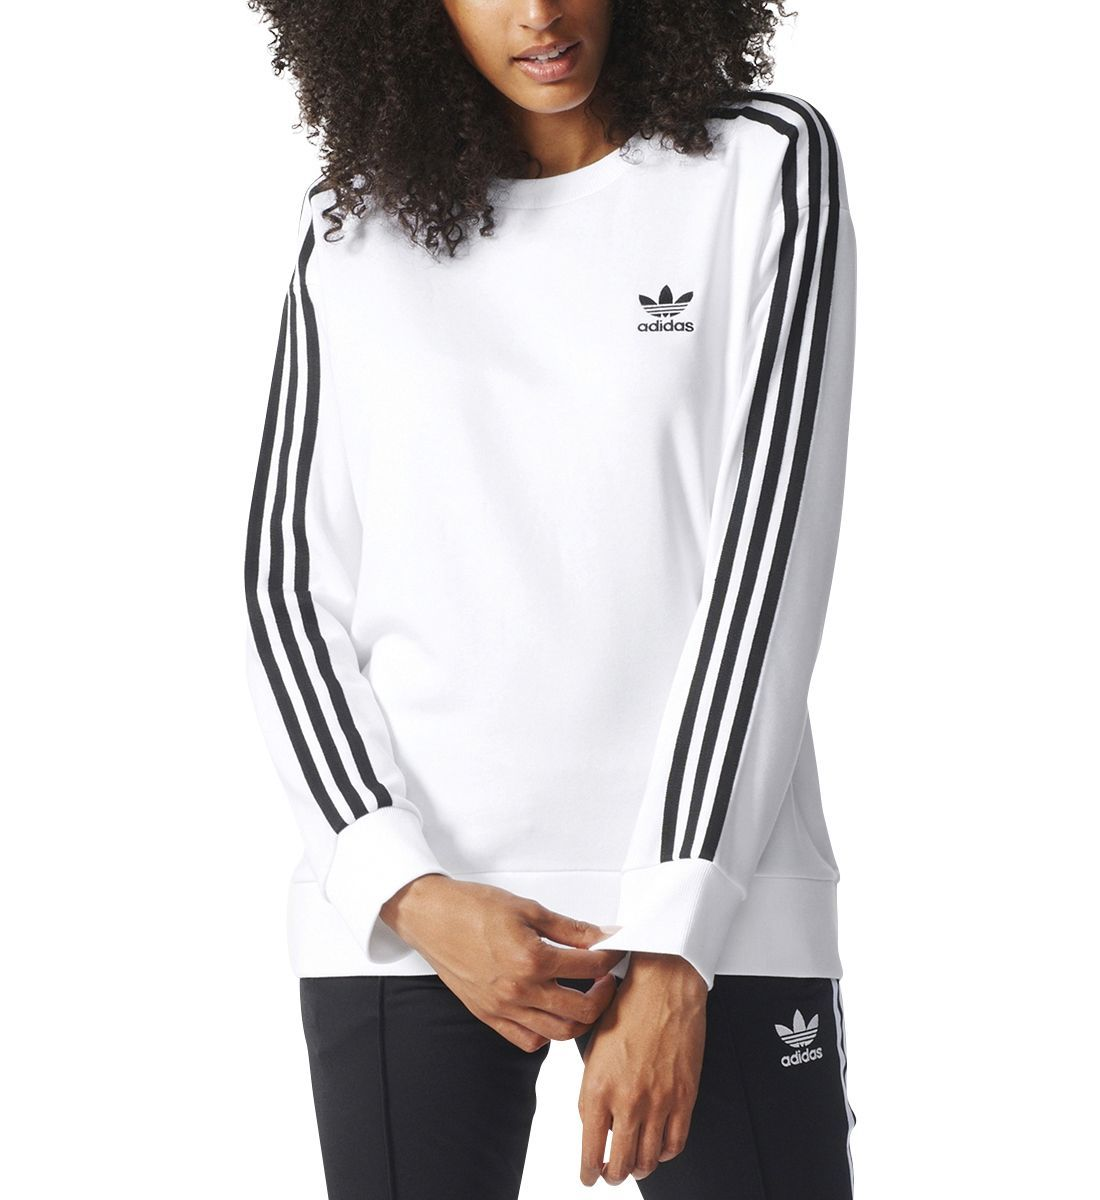 Line 3 Femme Originals A Sweat Pulls Mode Vêtements Adidas Stripes zqjUMGSLVp